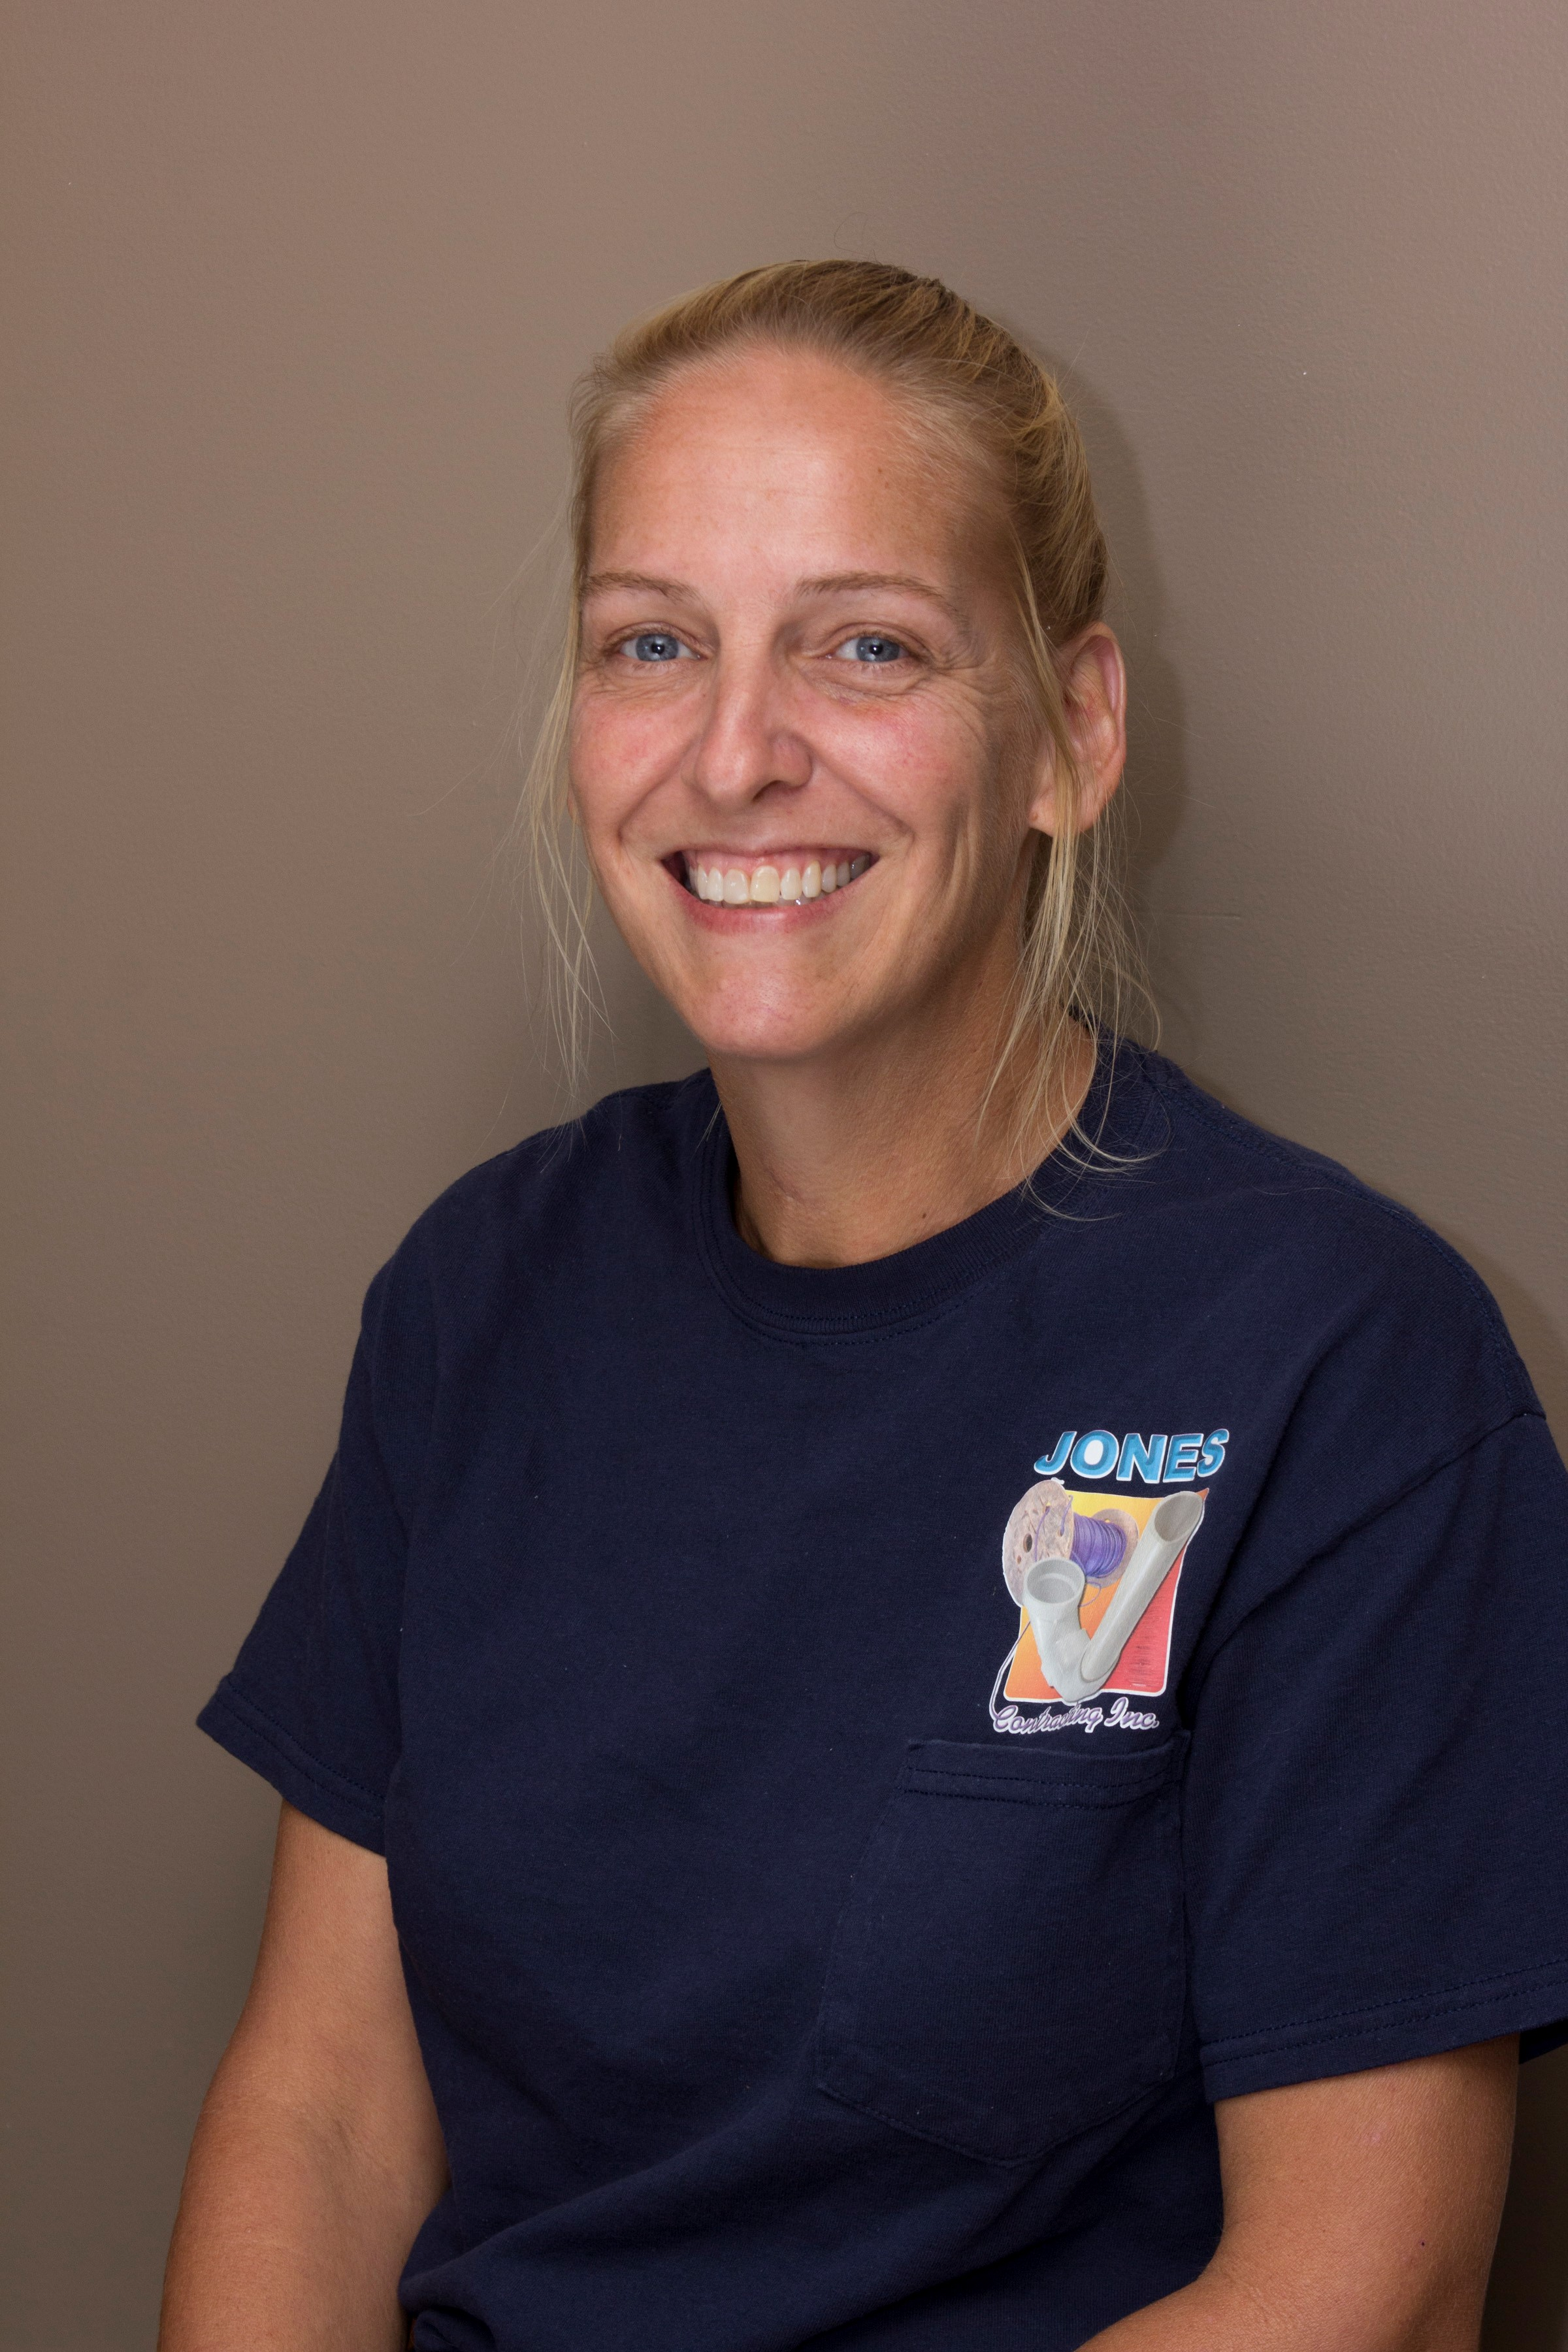 Image of Jones Contracting employee Julie Porter